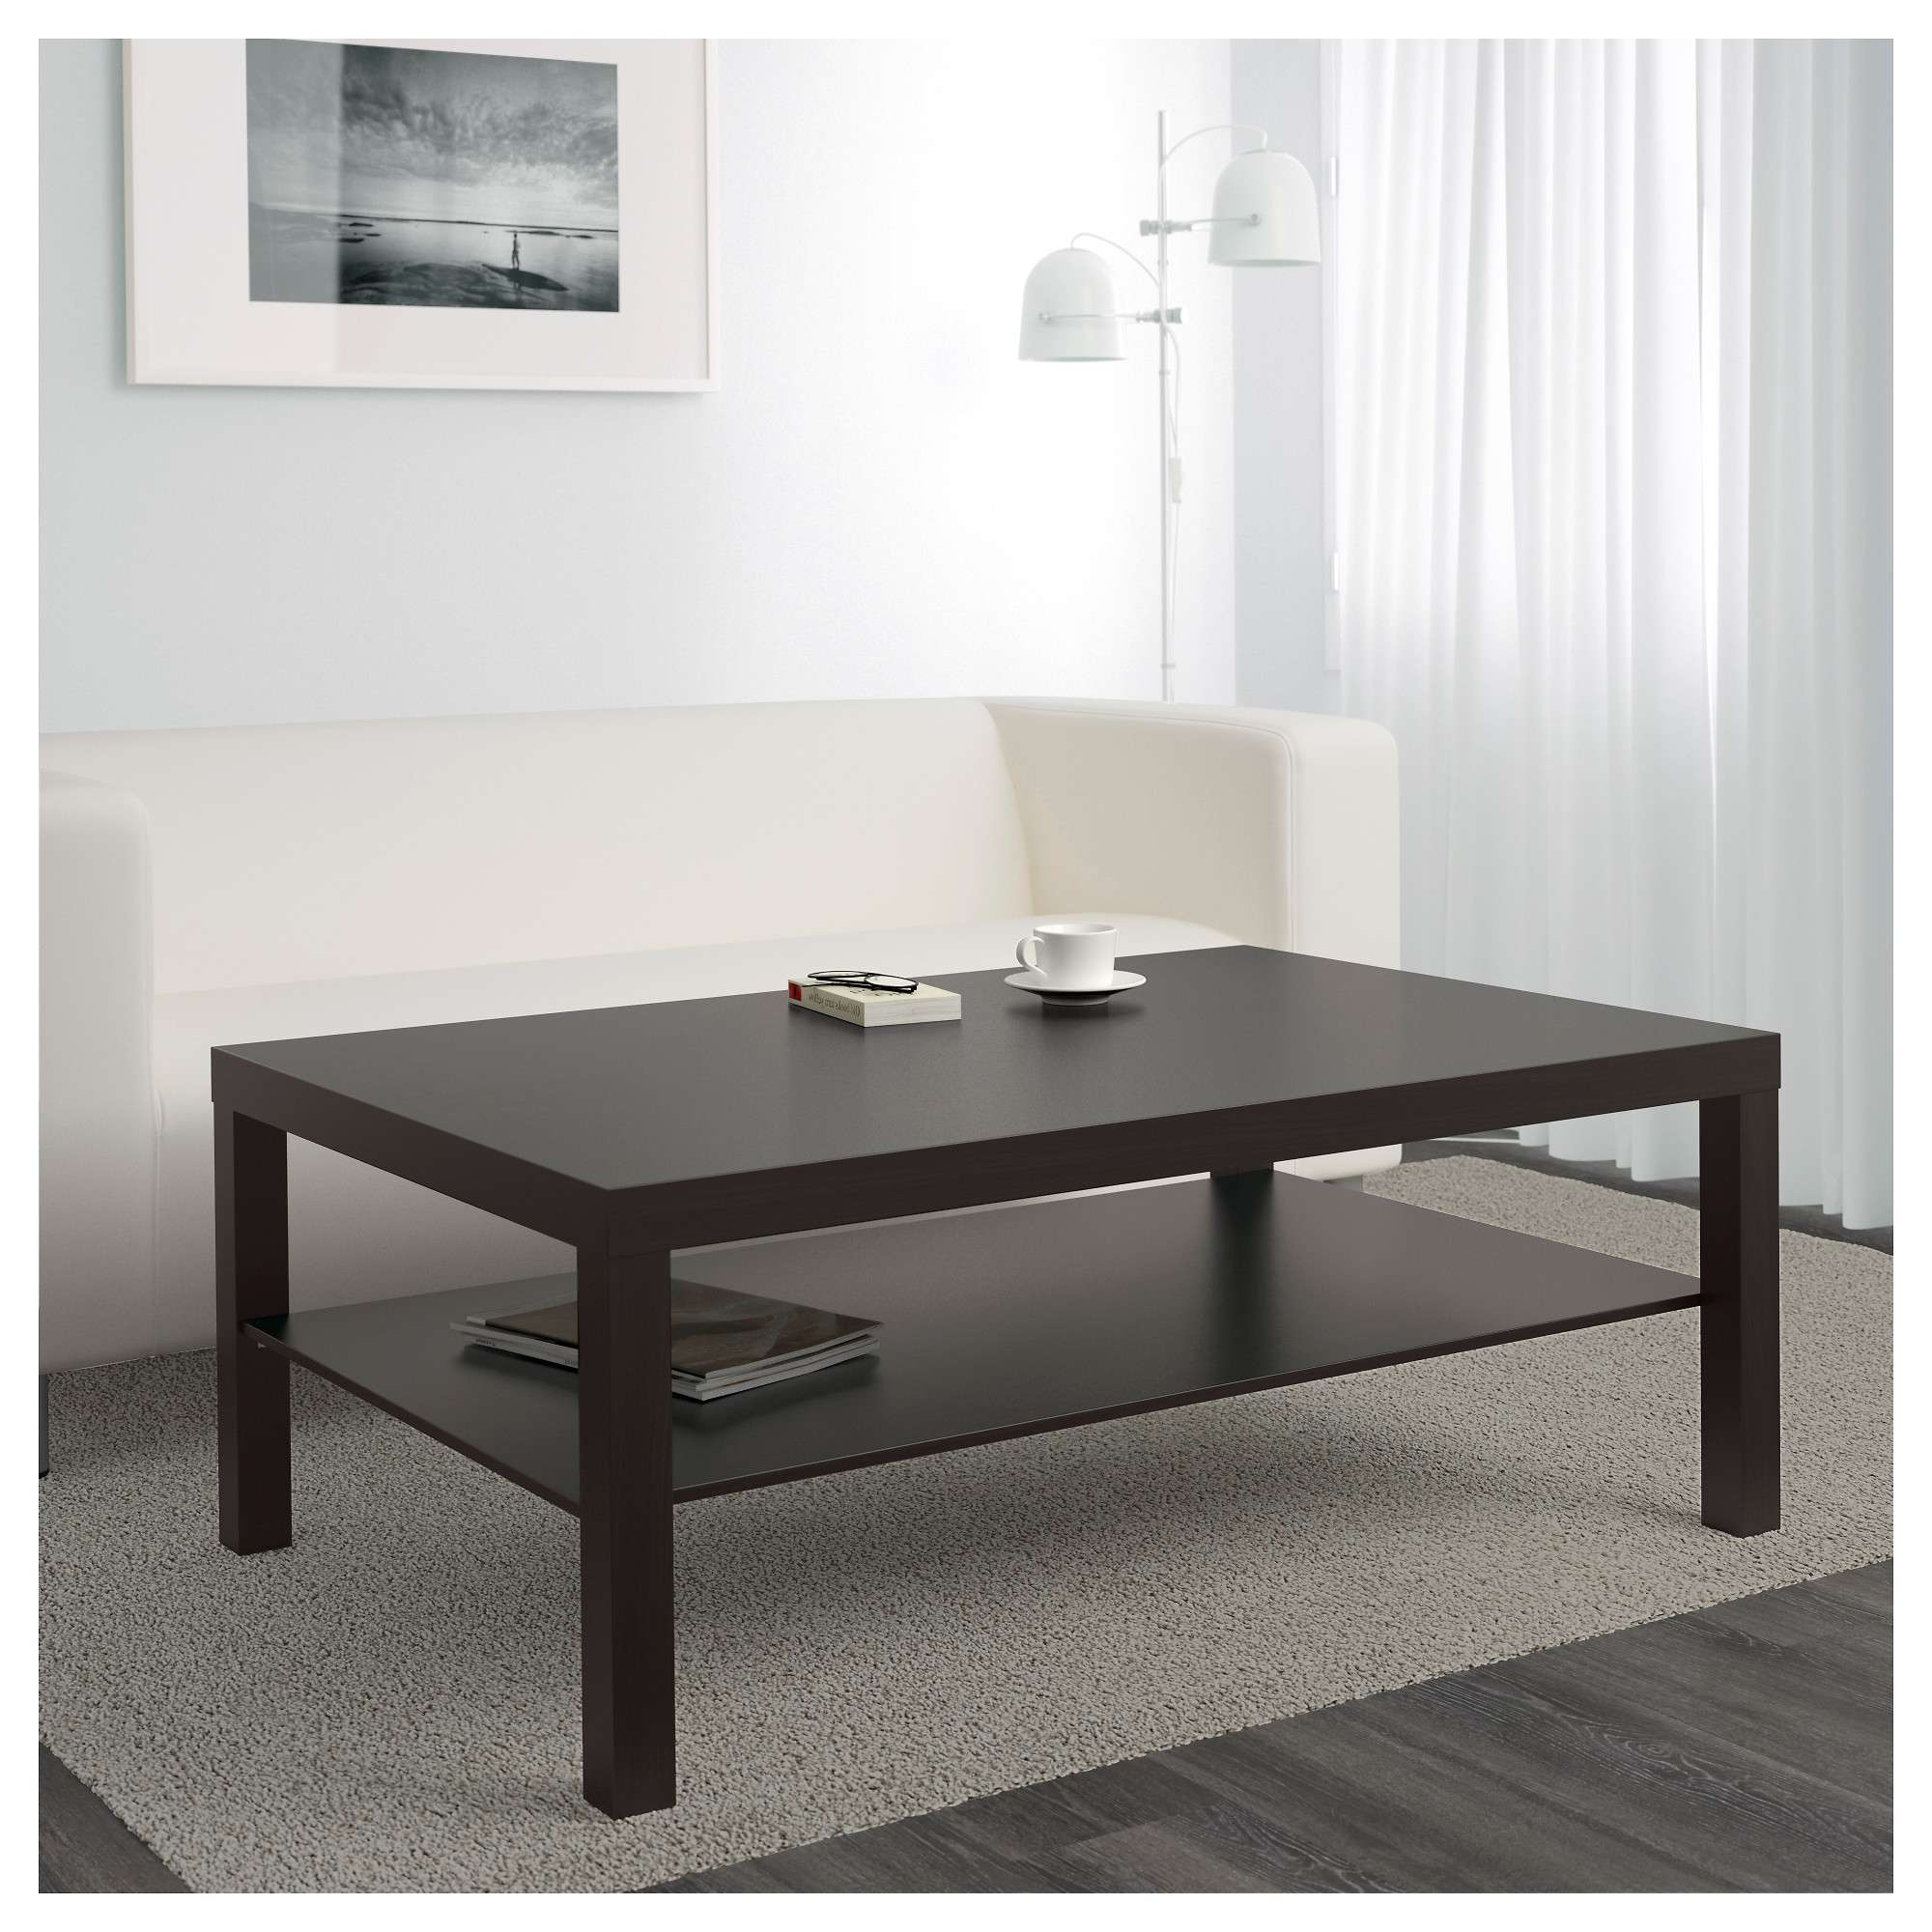 Lack Coffee Table – Black Brown – Ikea For Best And Newest Dark Brown Coffee Tables (View 2 of 20)